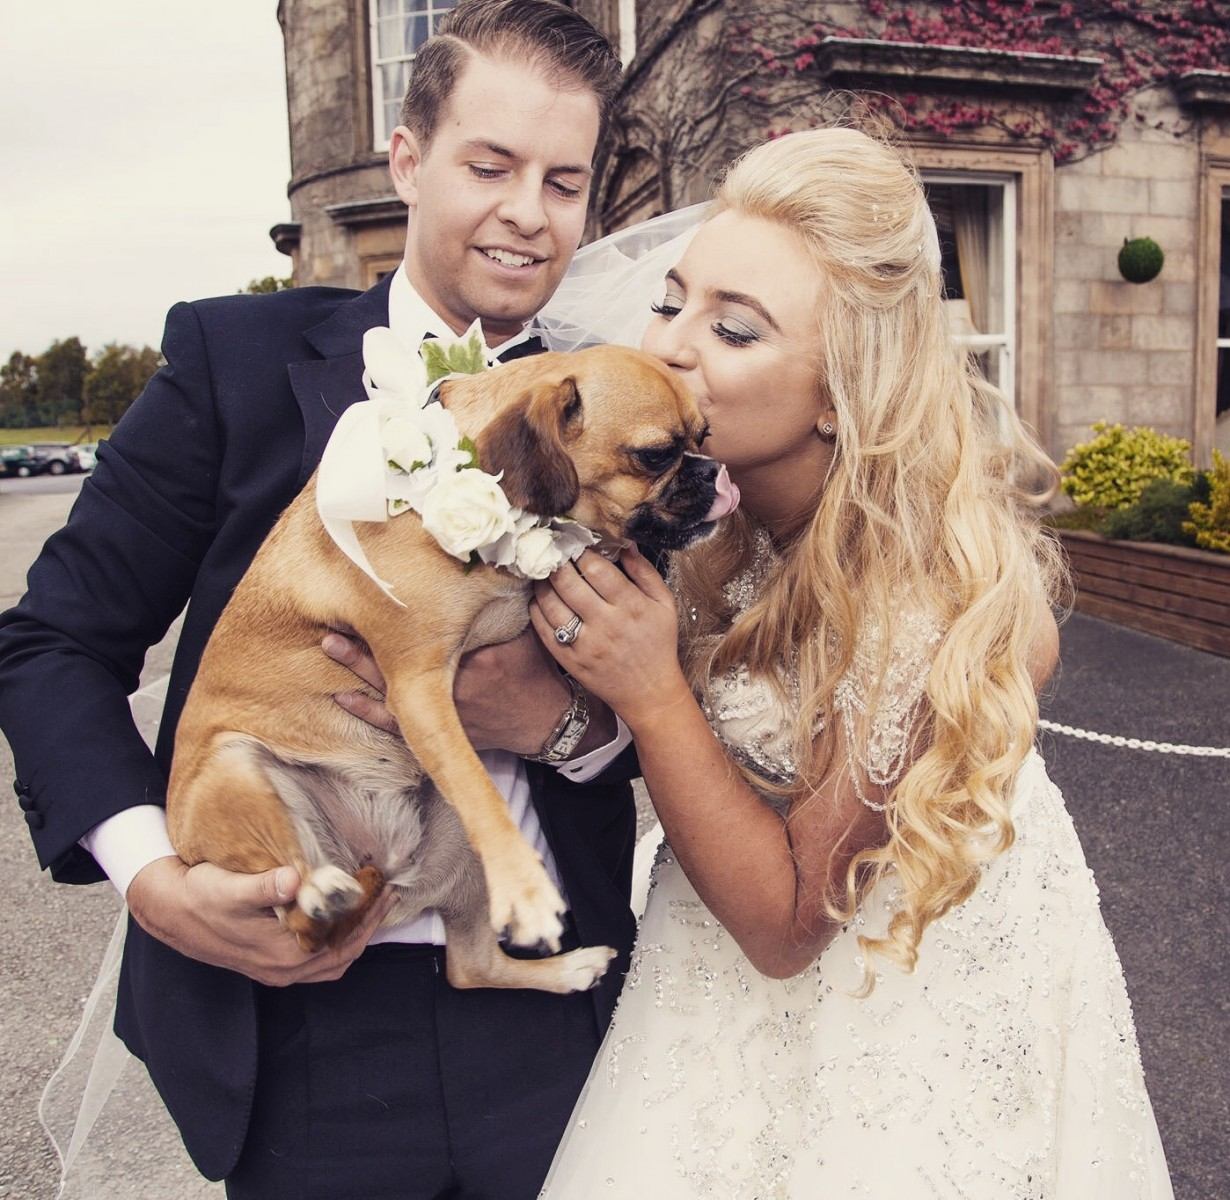 Pampered pooch takes pride of place at owner's wedding as their flower girl!